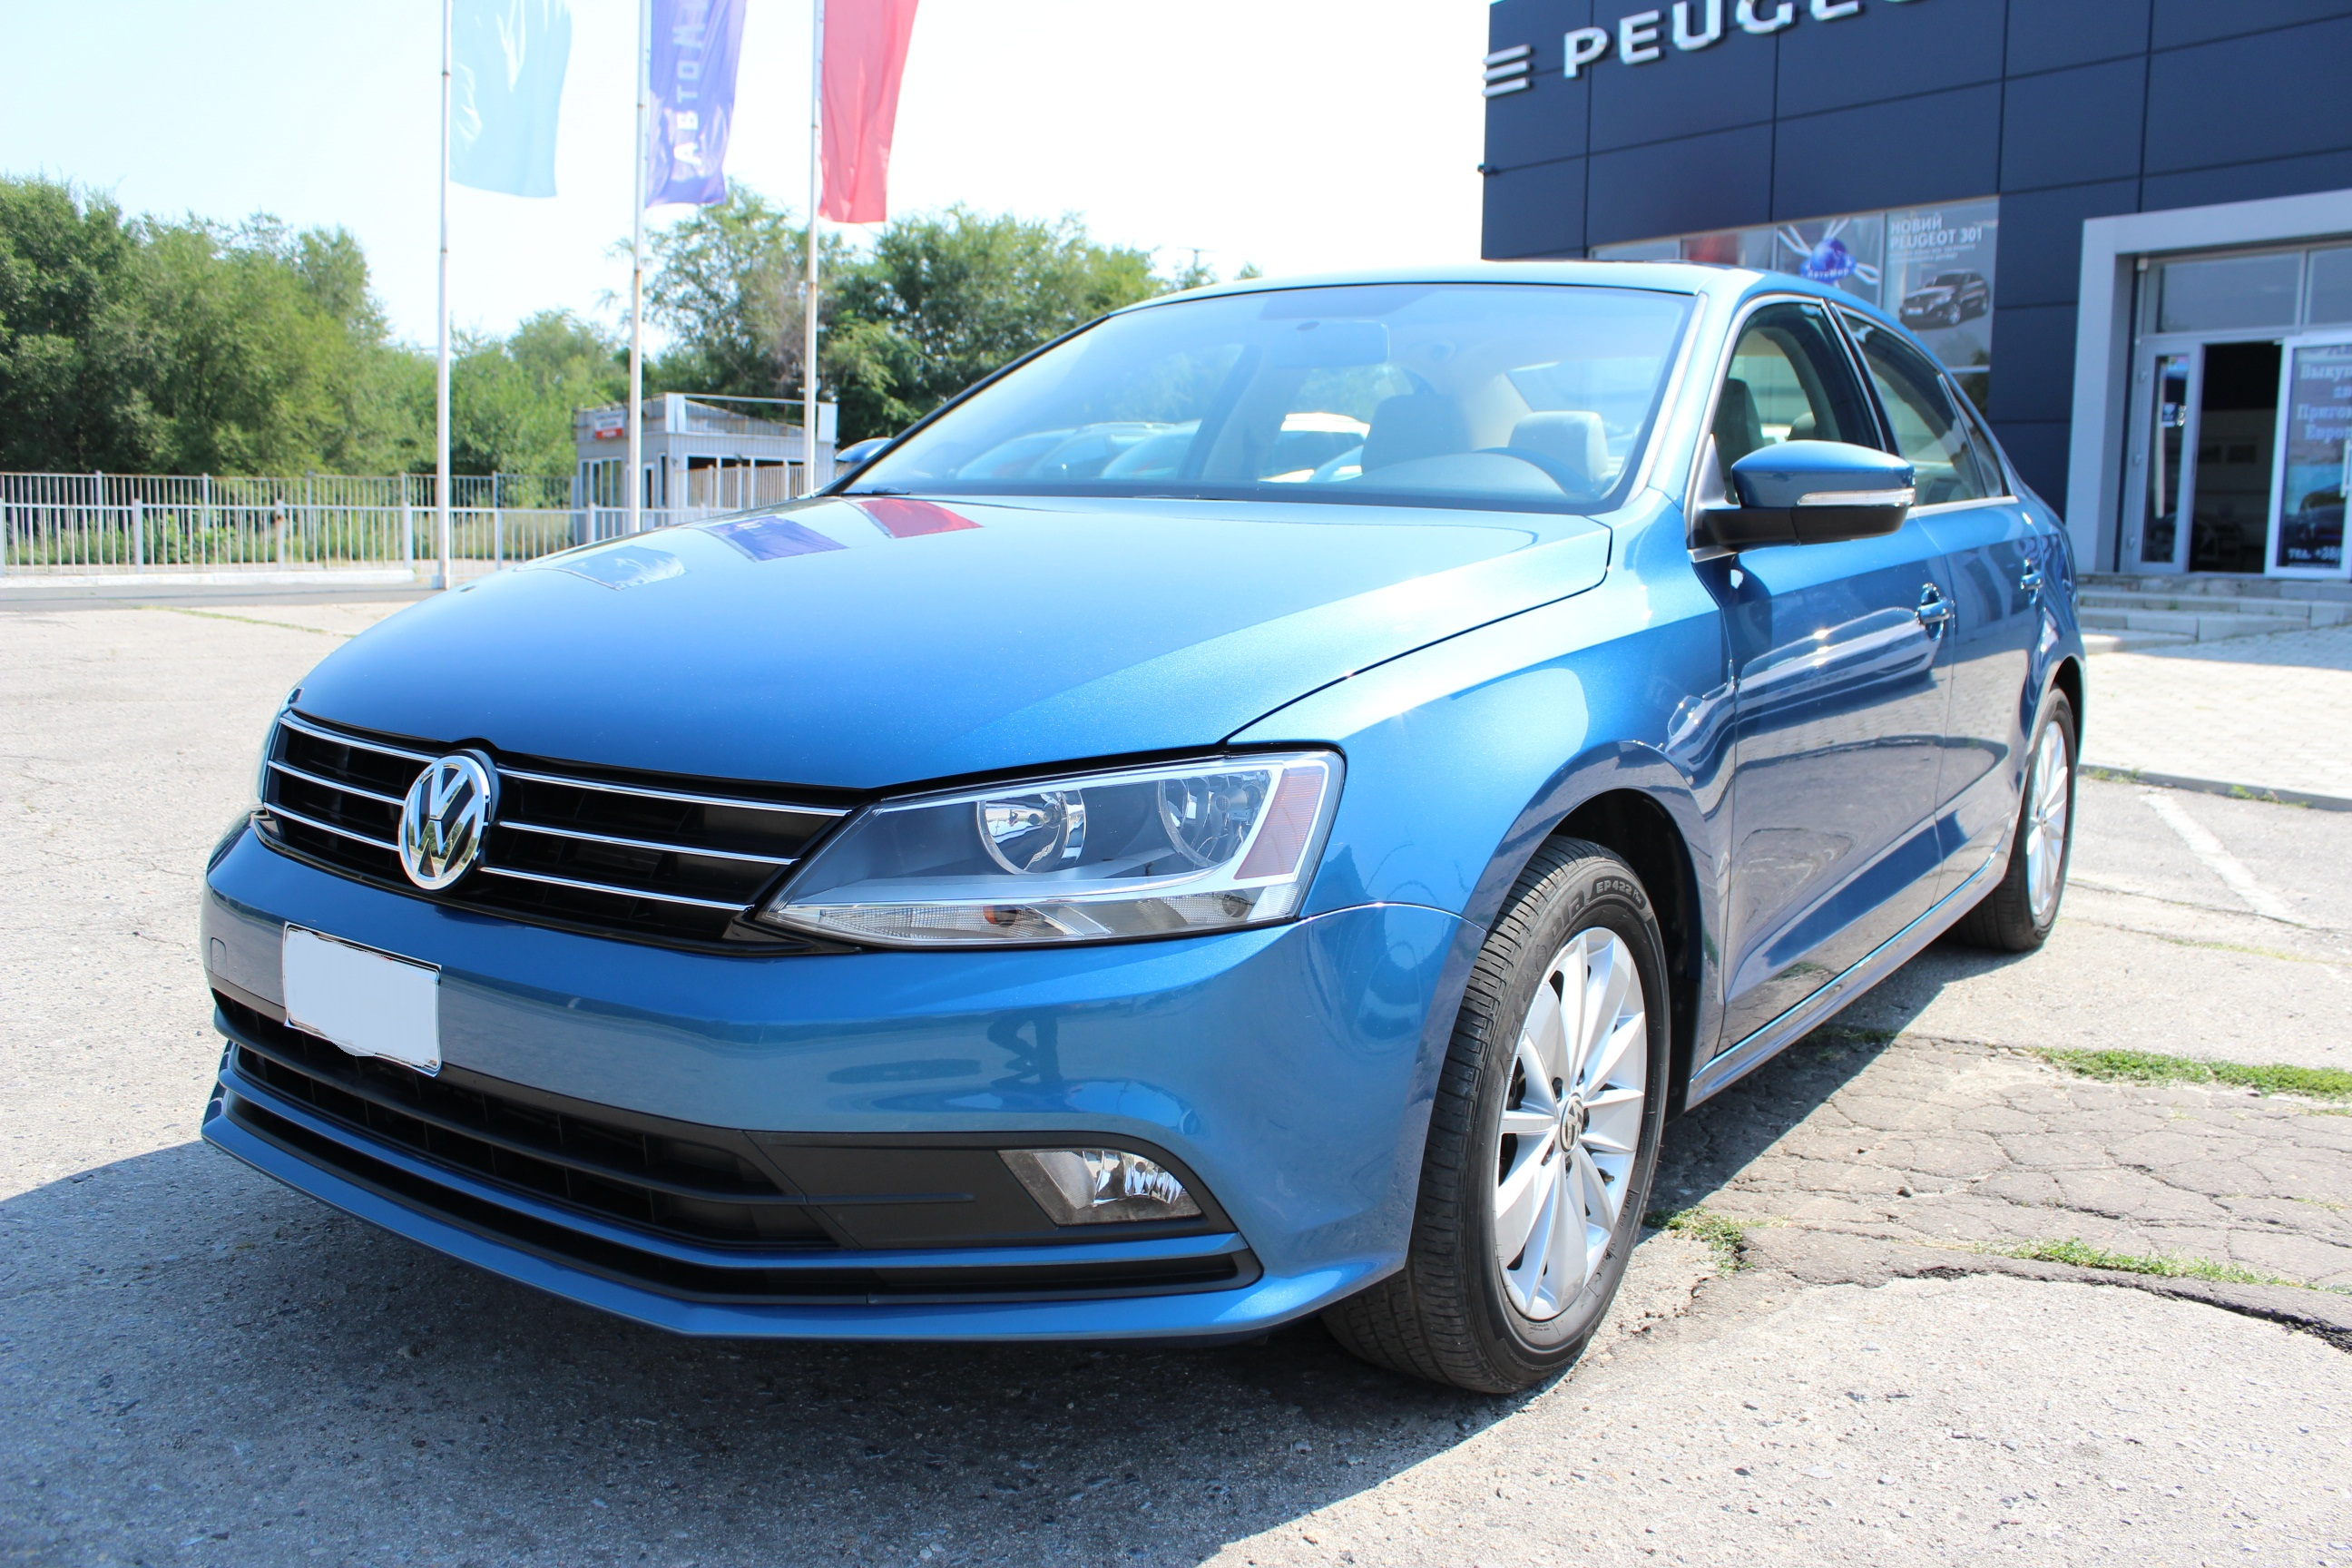 Volkswagen Jetta VI 1.4 AT (150 л.с.)